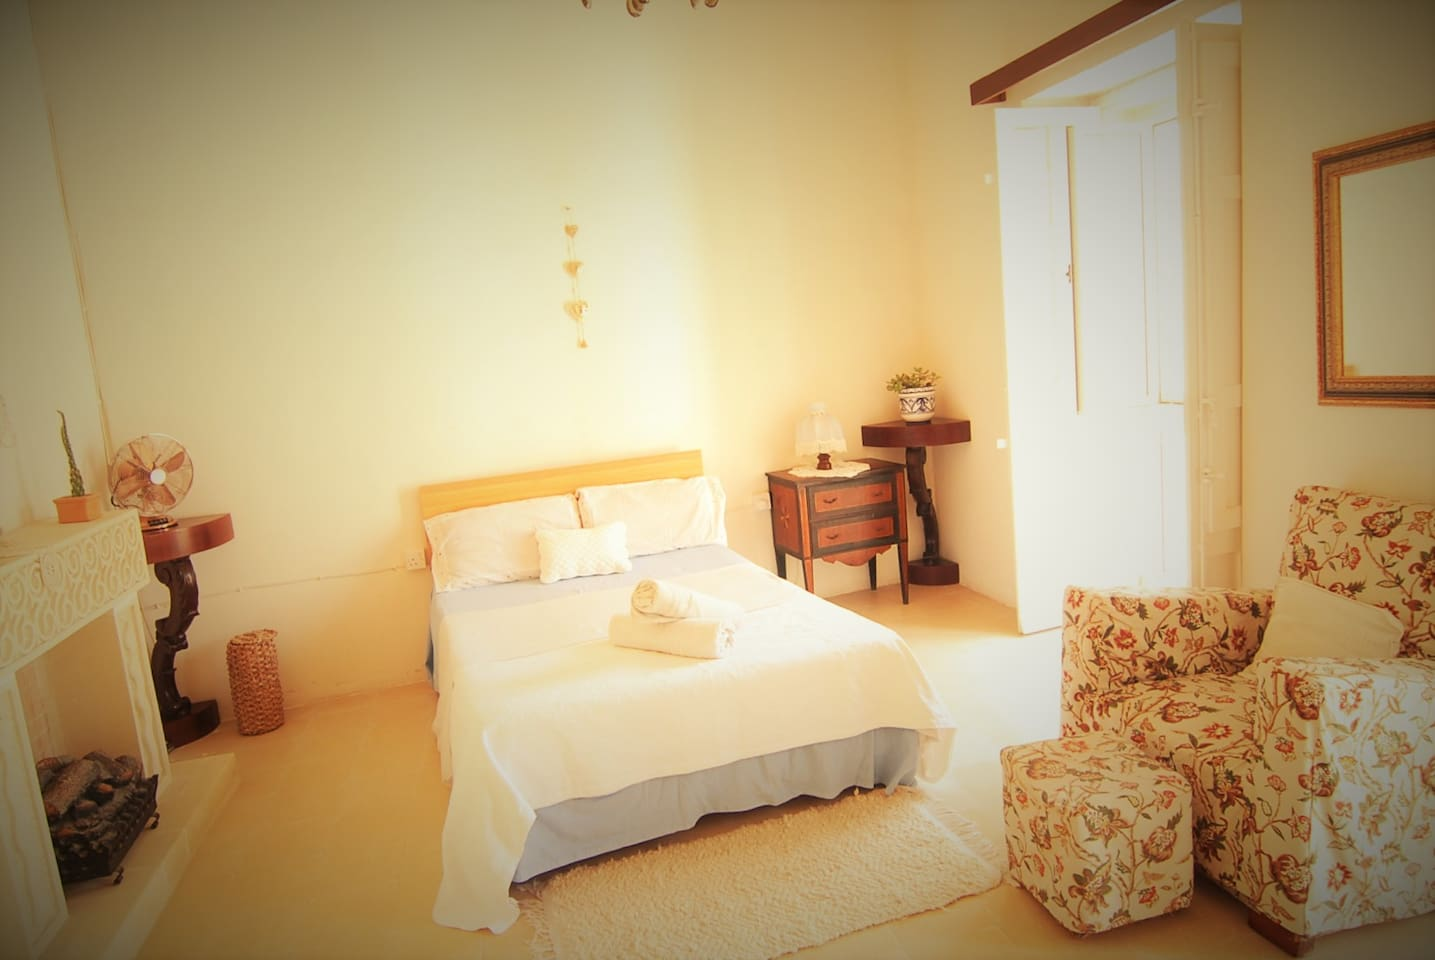 Queen Room - A comfortable double-size bed, high ceilings, wide spaces and lots of light: enjoy your time and relax during your holidays!